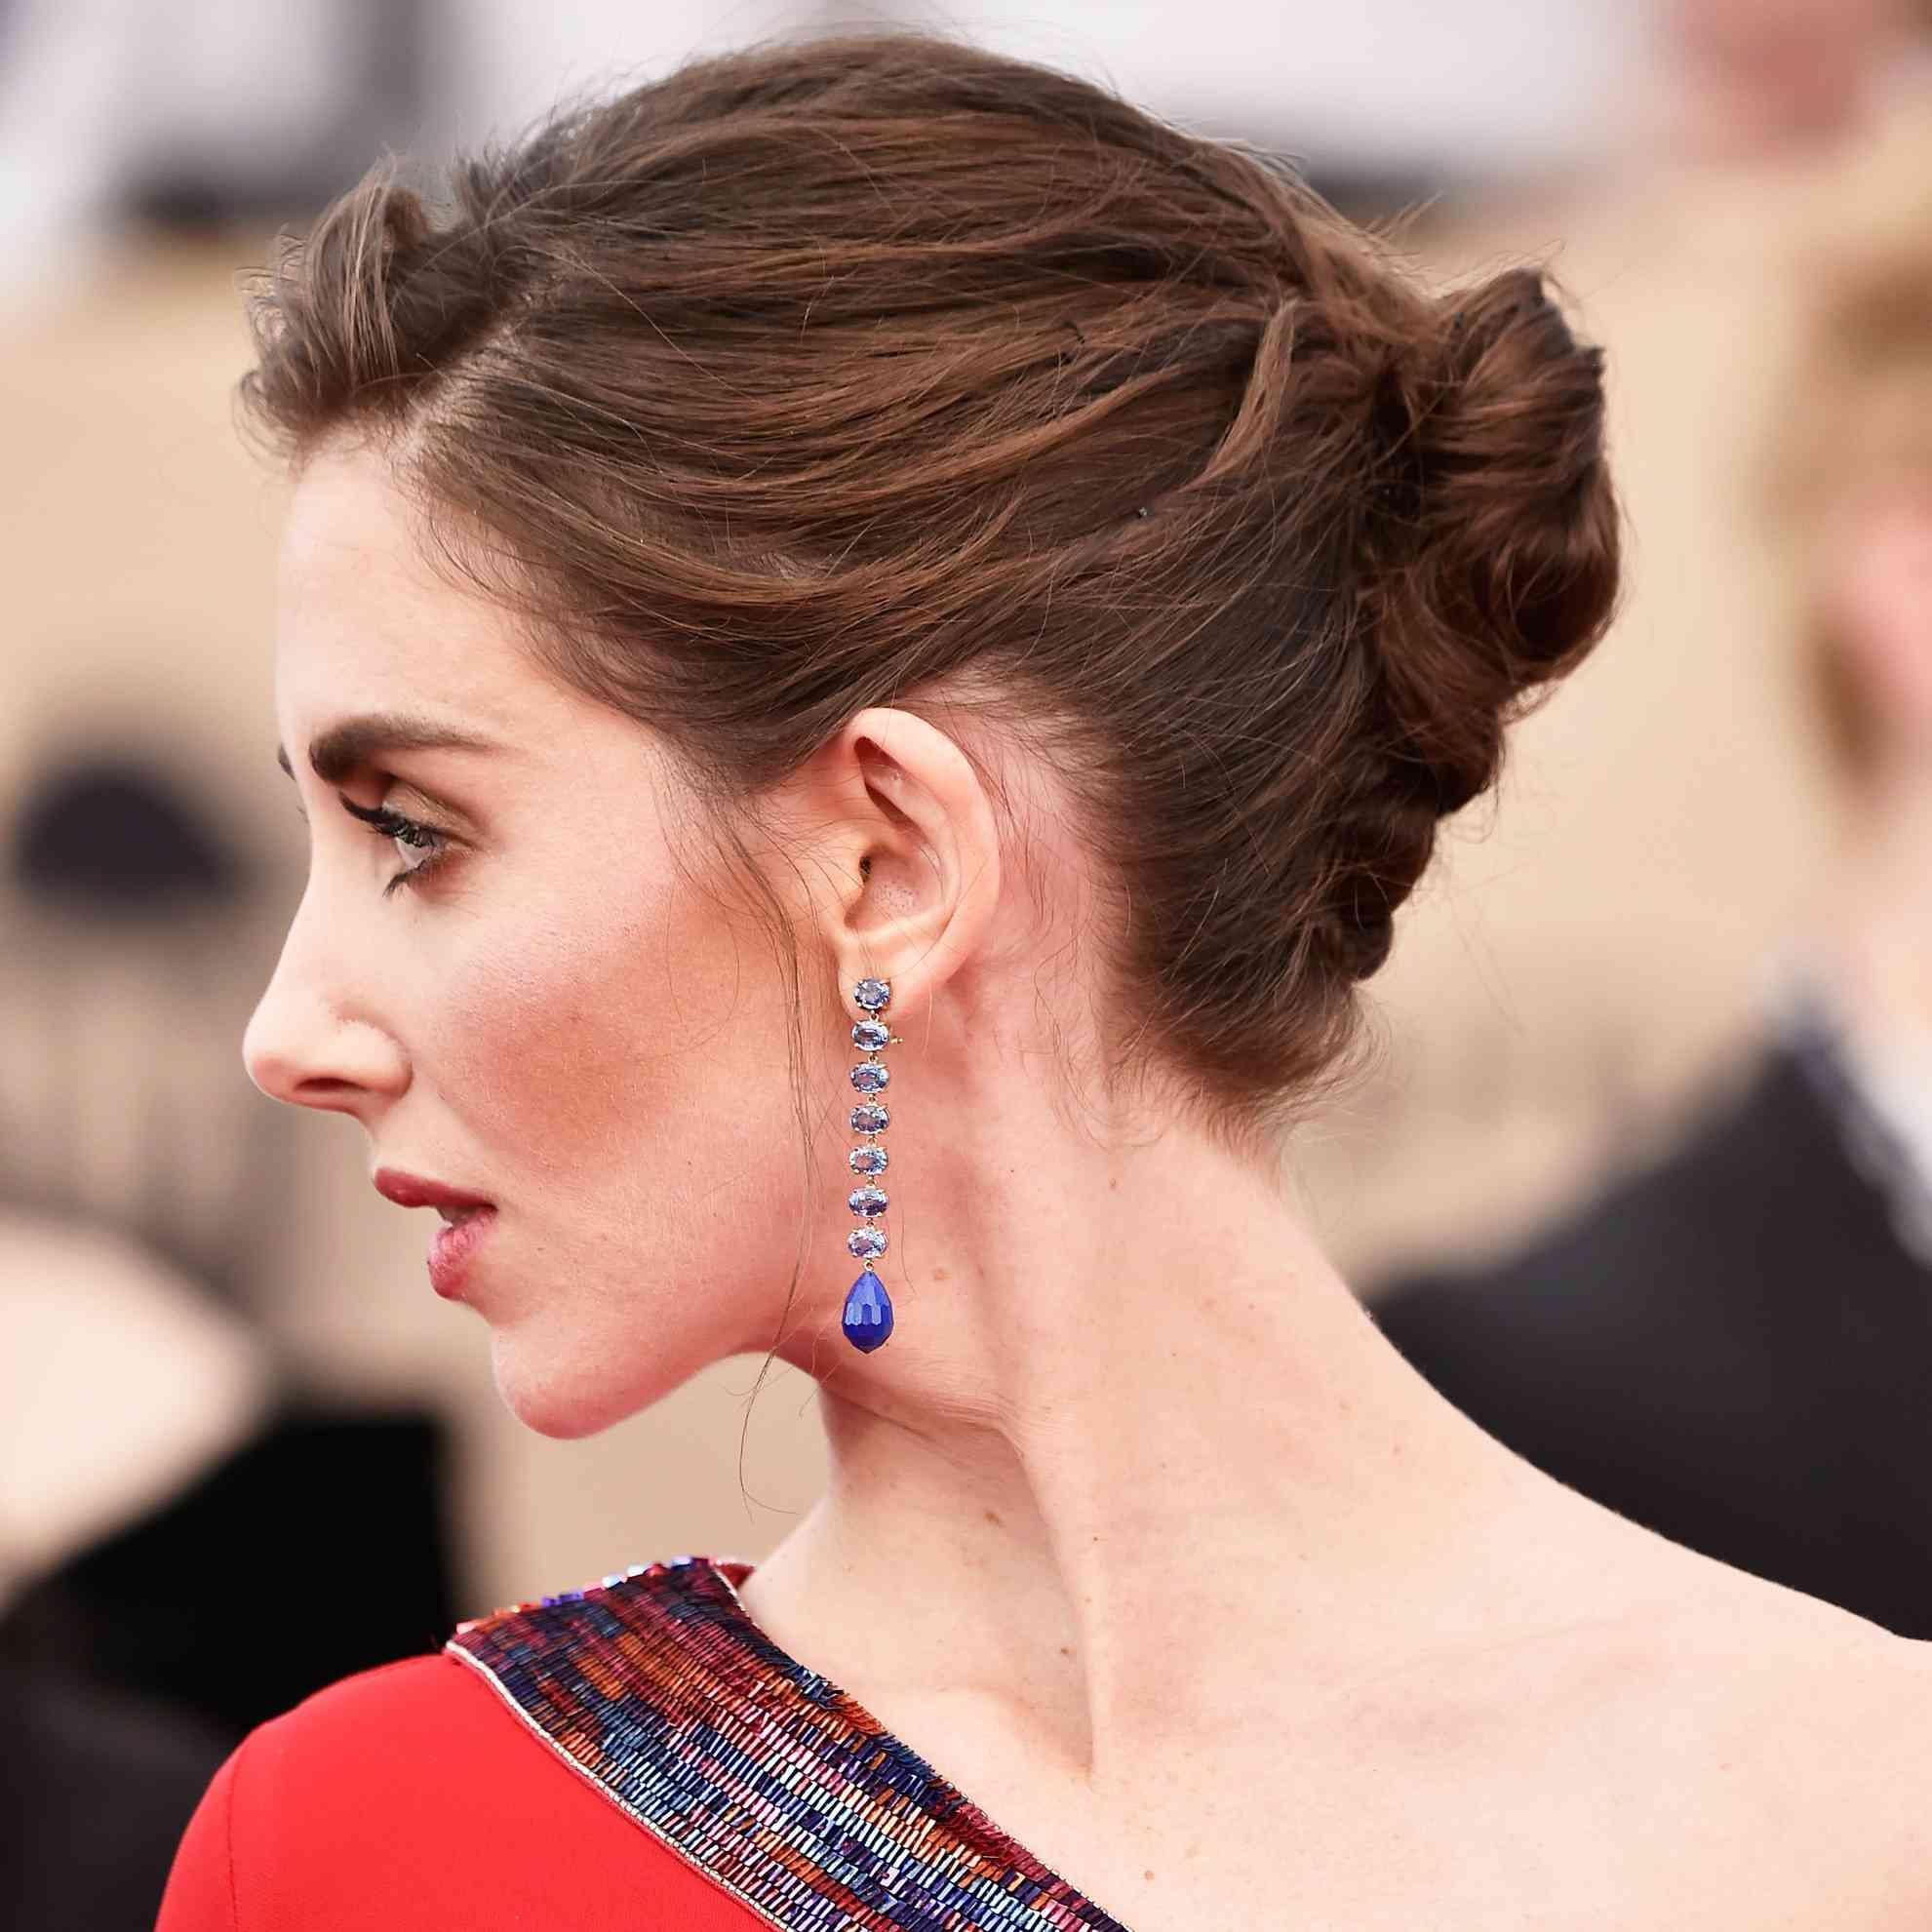 Celebrity Hairstyles For Weddings: 12 Celebrity Hairstyles To Inspire Your Wedding-Day Updo